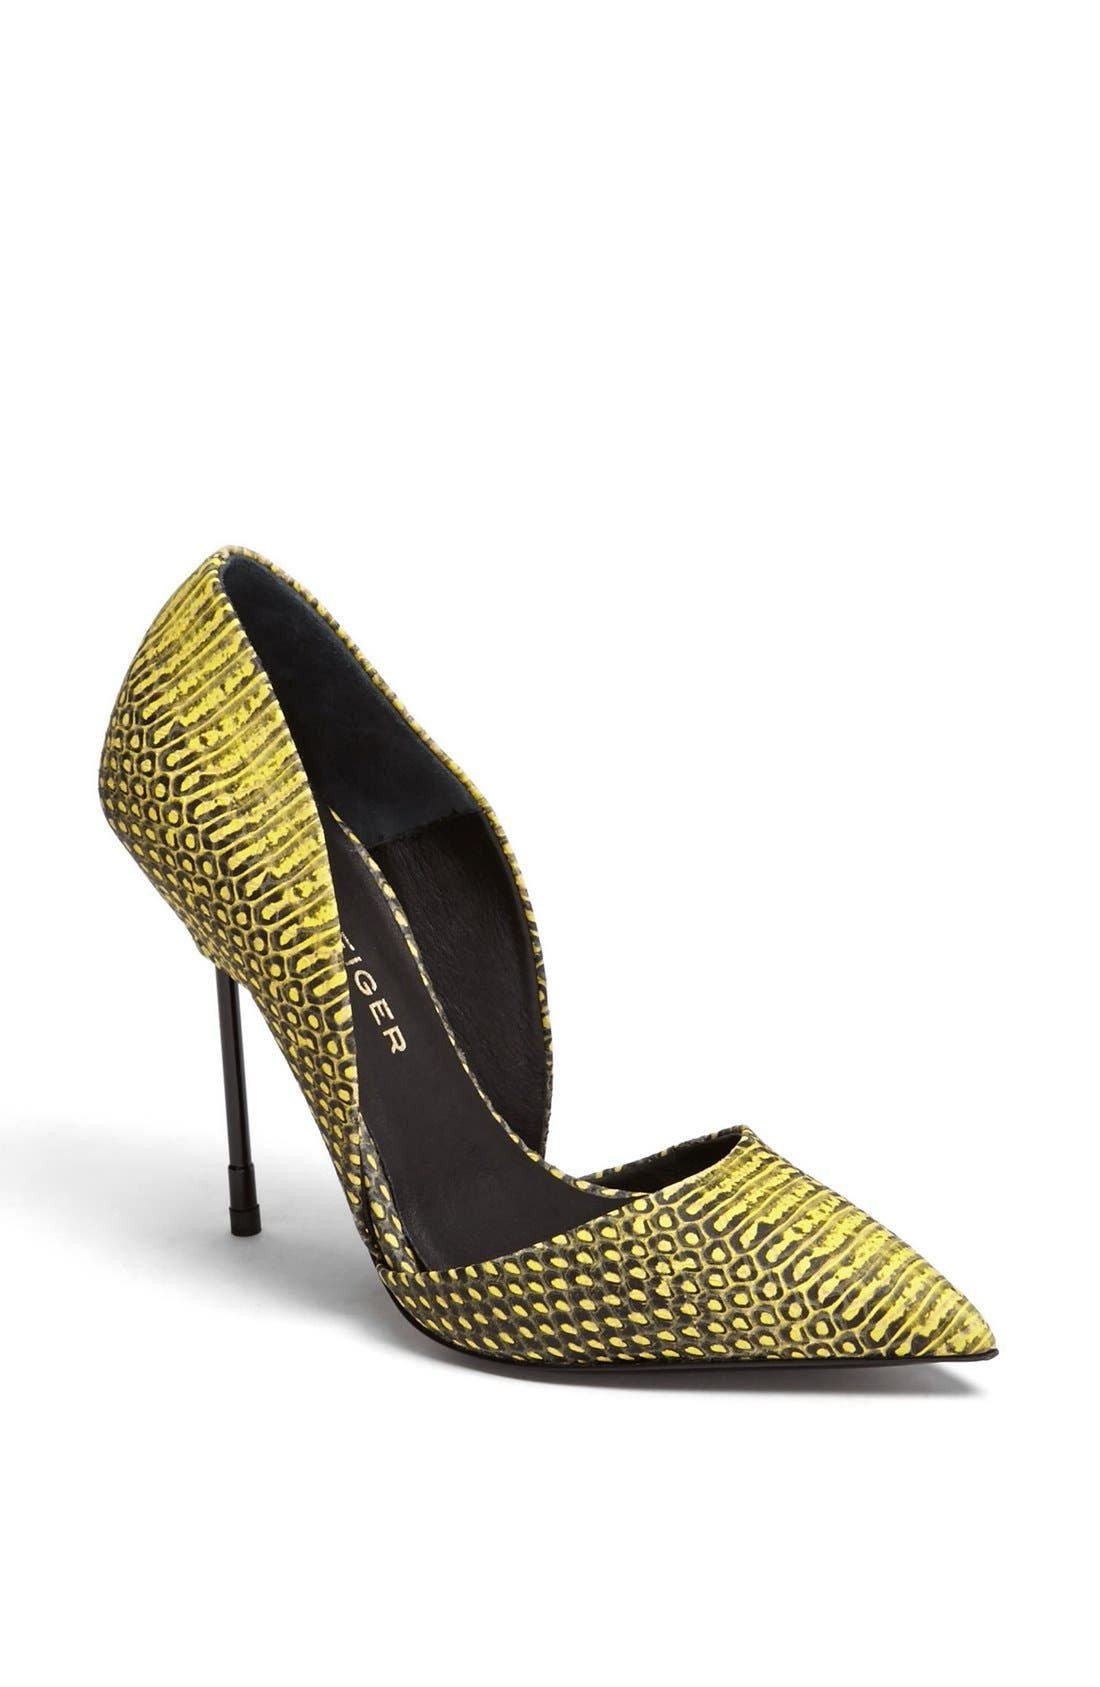 Alternate Image 1 Selected - Kurt Geiger London 'Bond' d'Orsay Pump